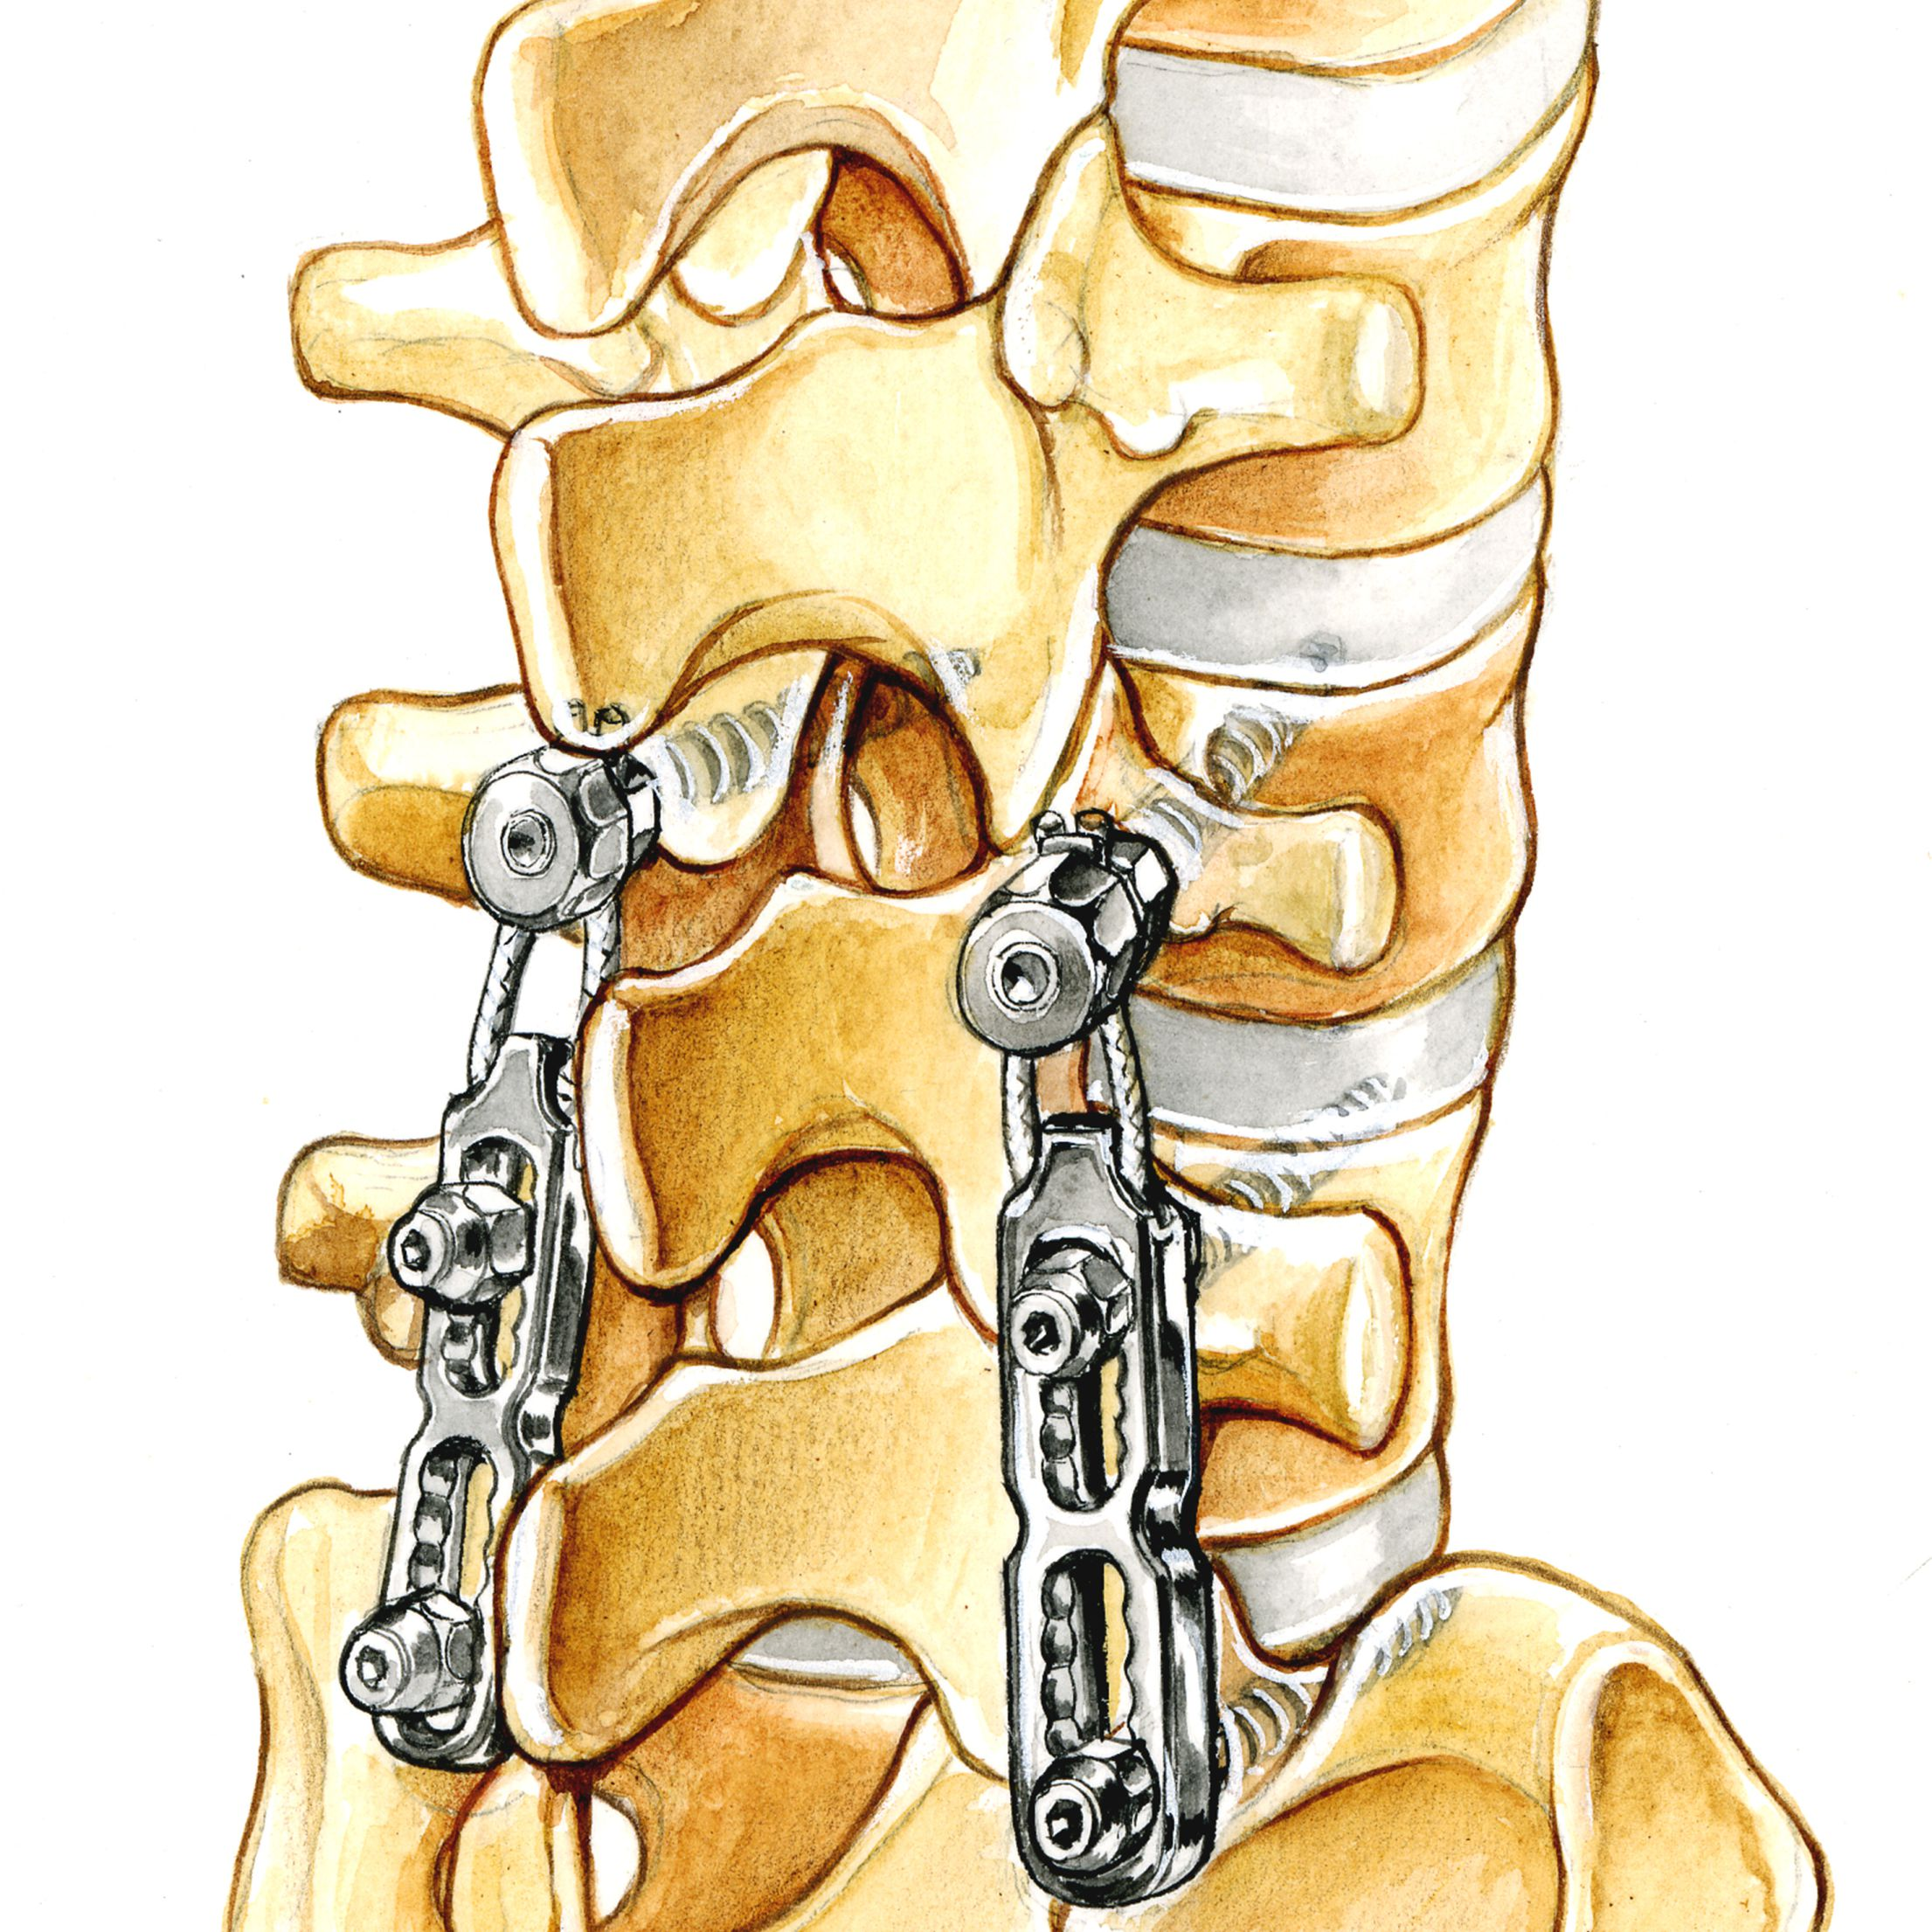 should you have surgery for cervical radiculopathy?